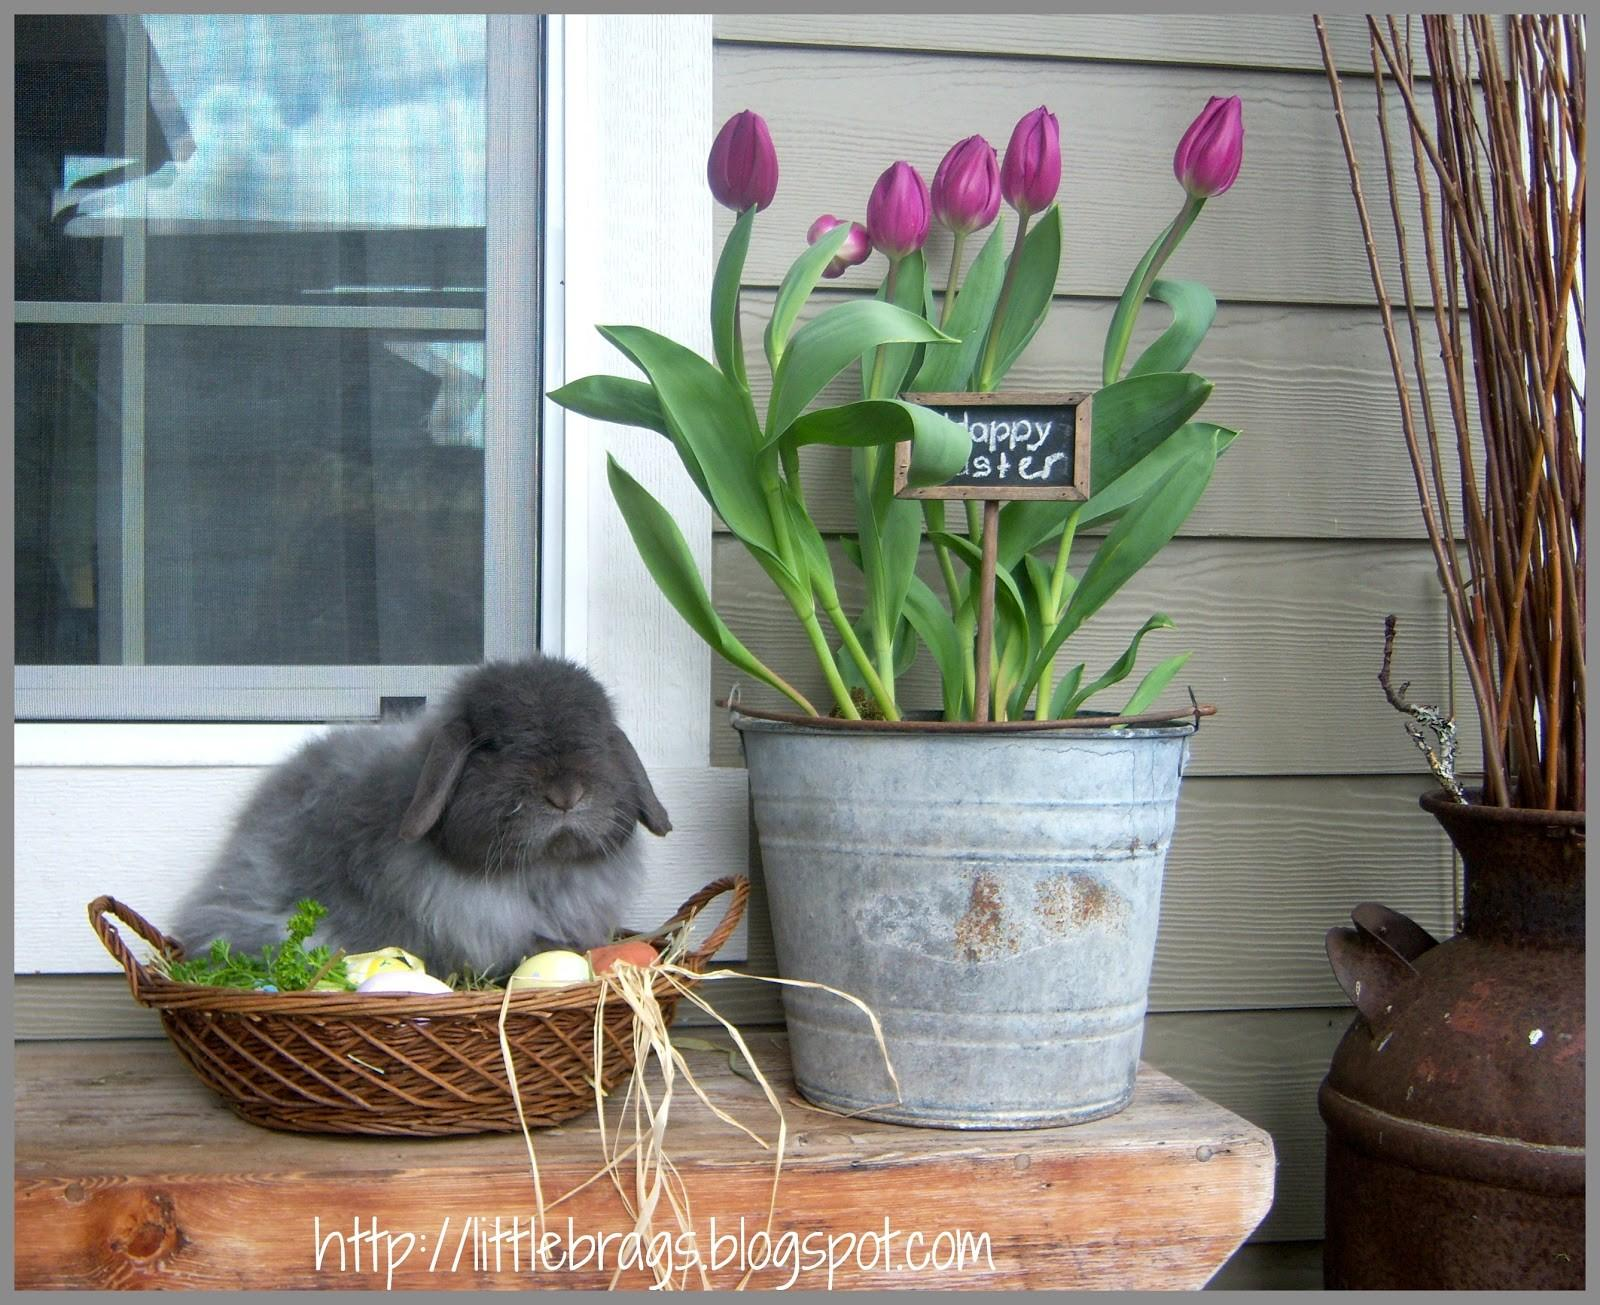 Little Brags Easter Decor Around House Our Bunny